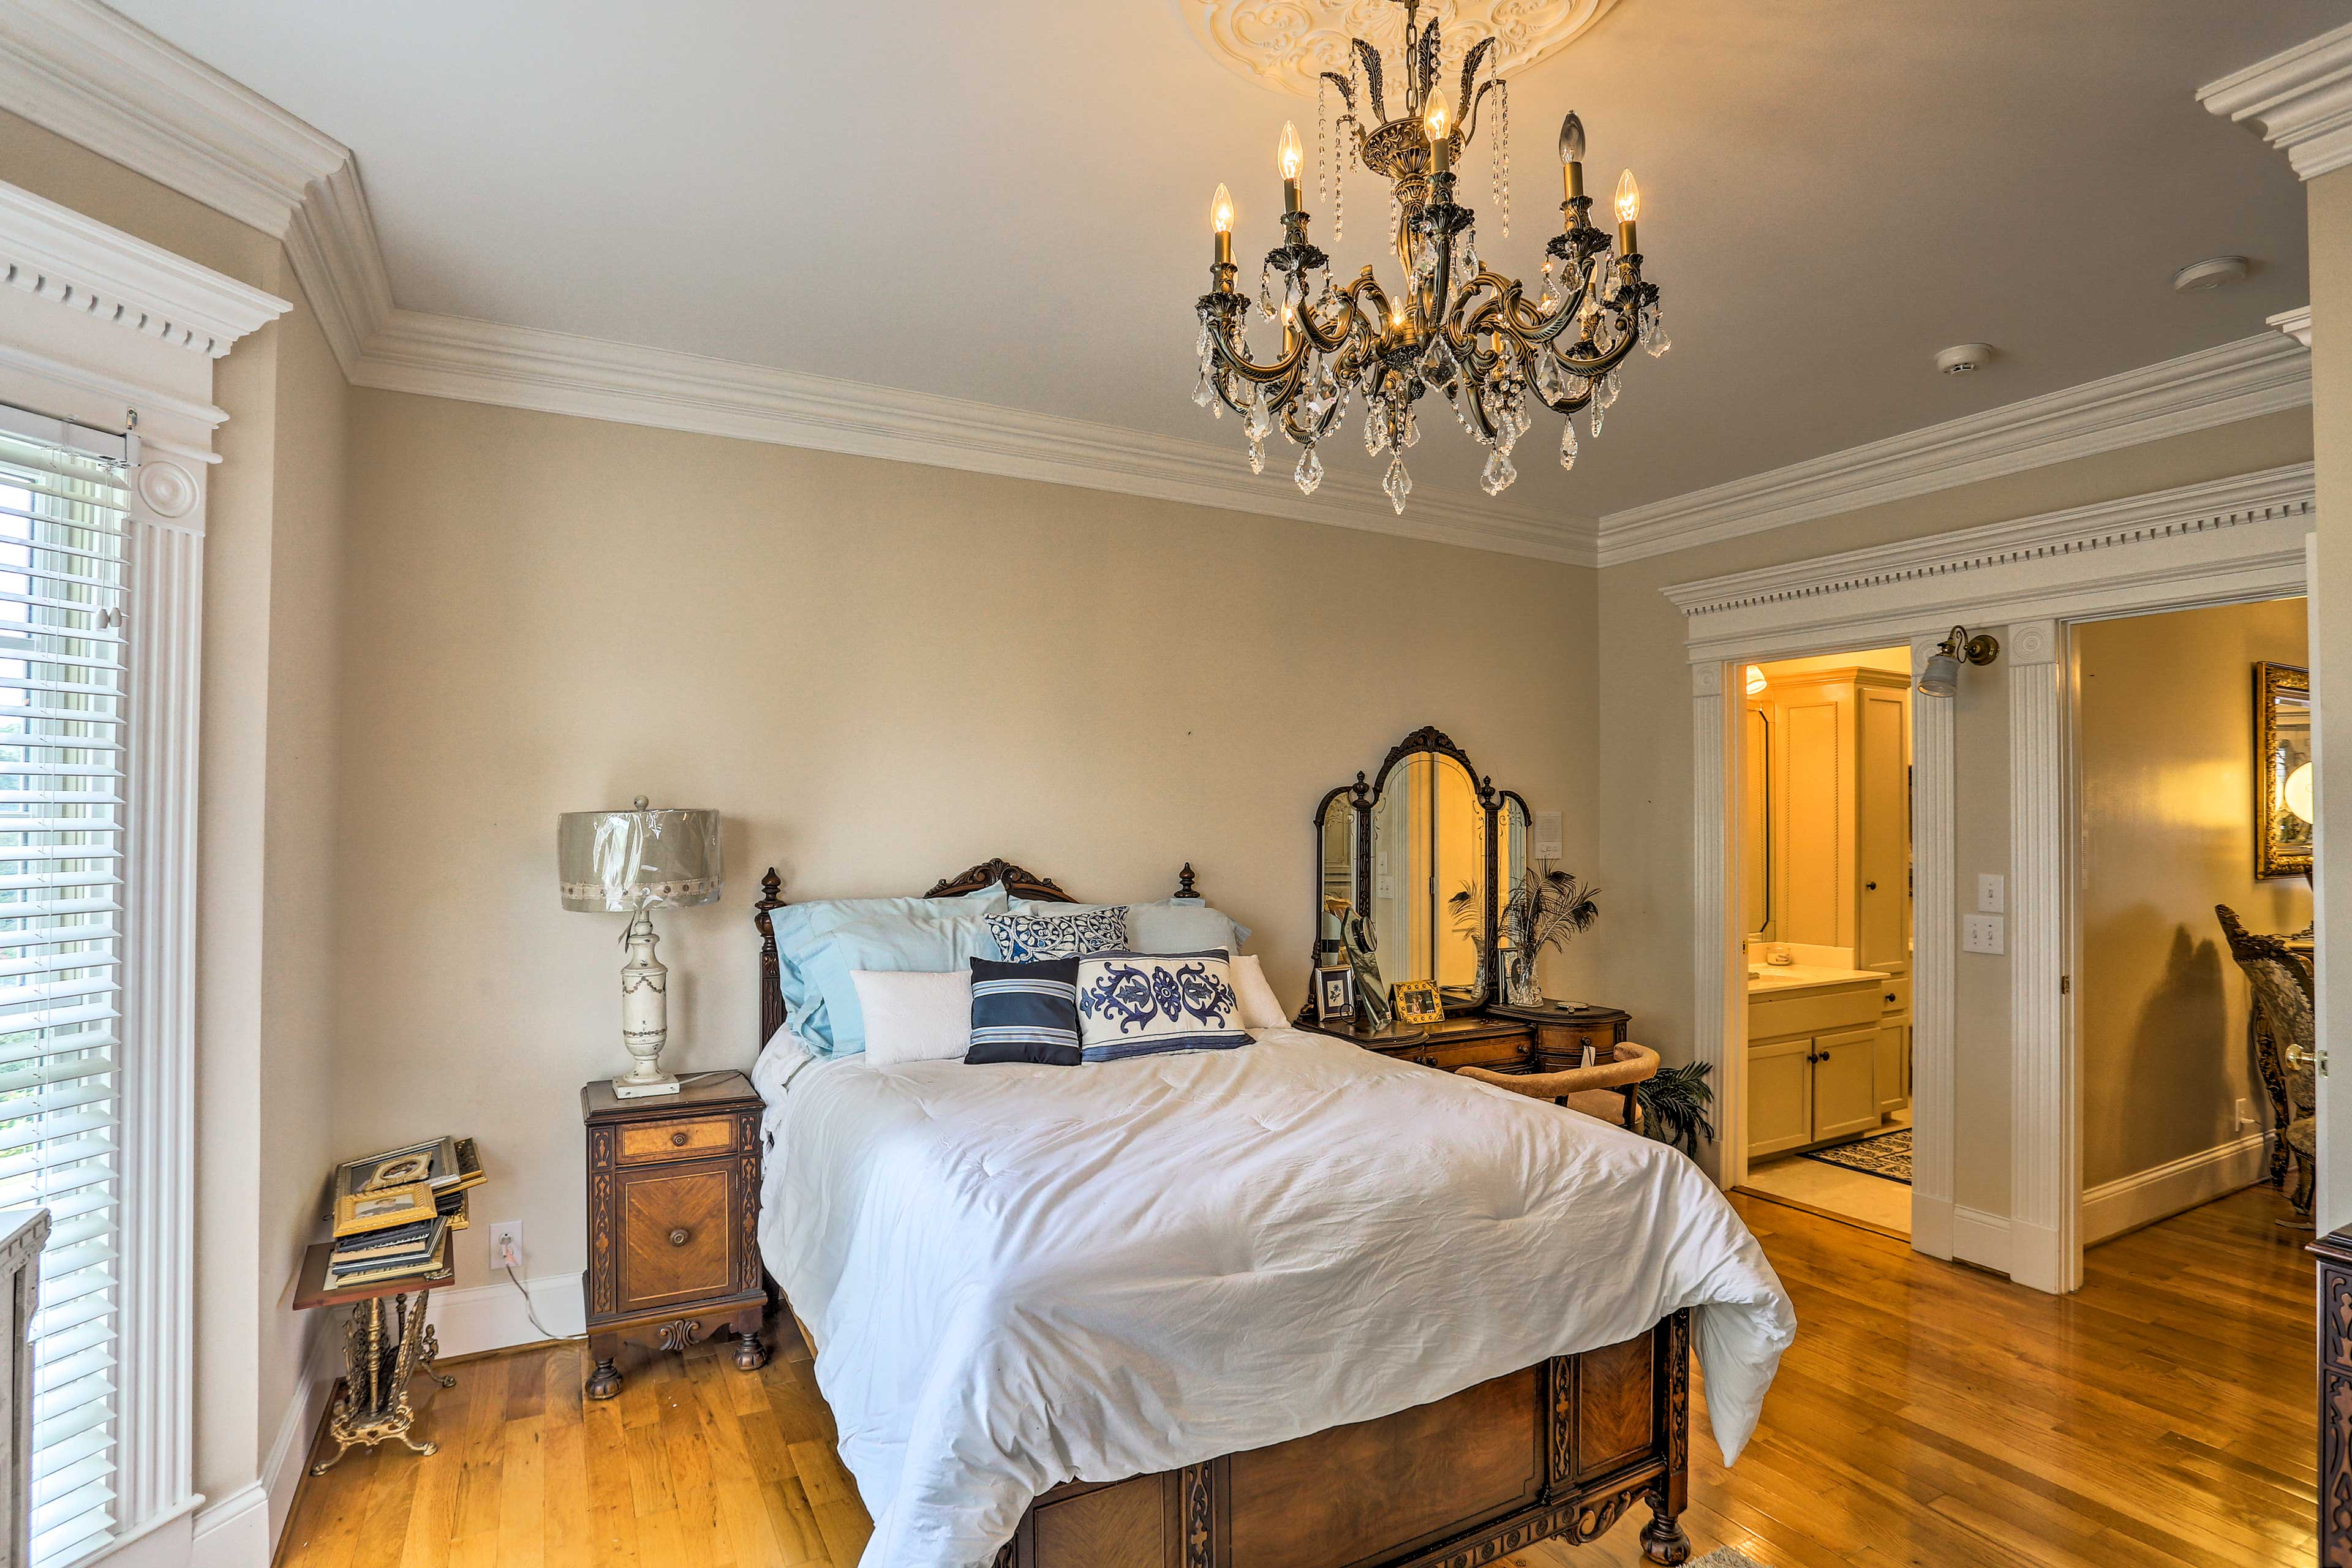 Head into the 'Guest Room,' which has a queen bed.